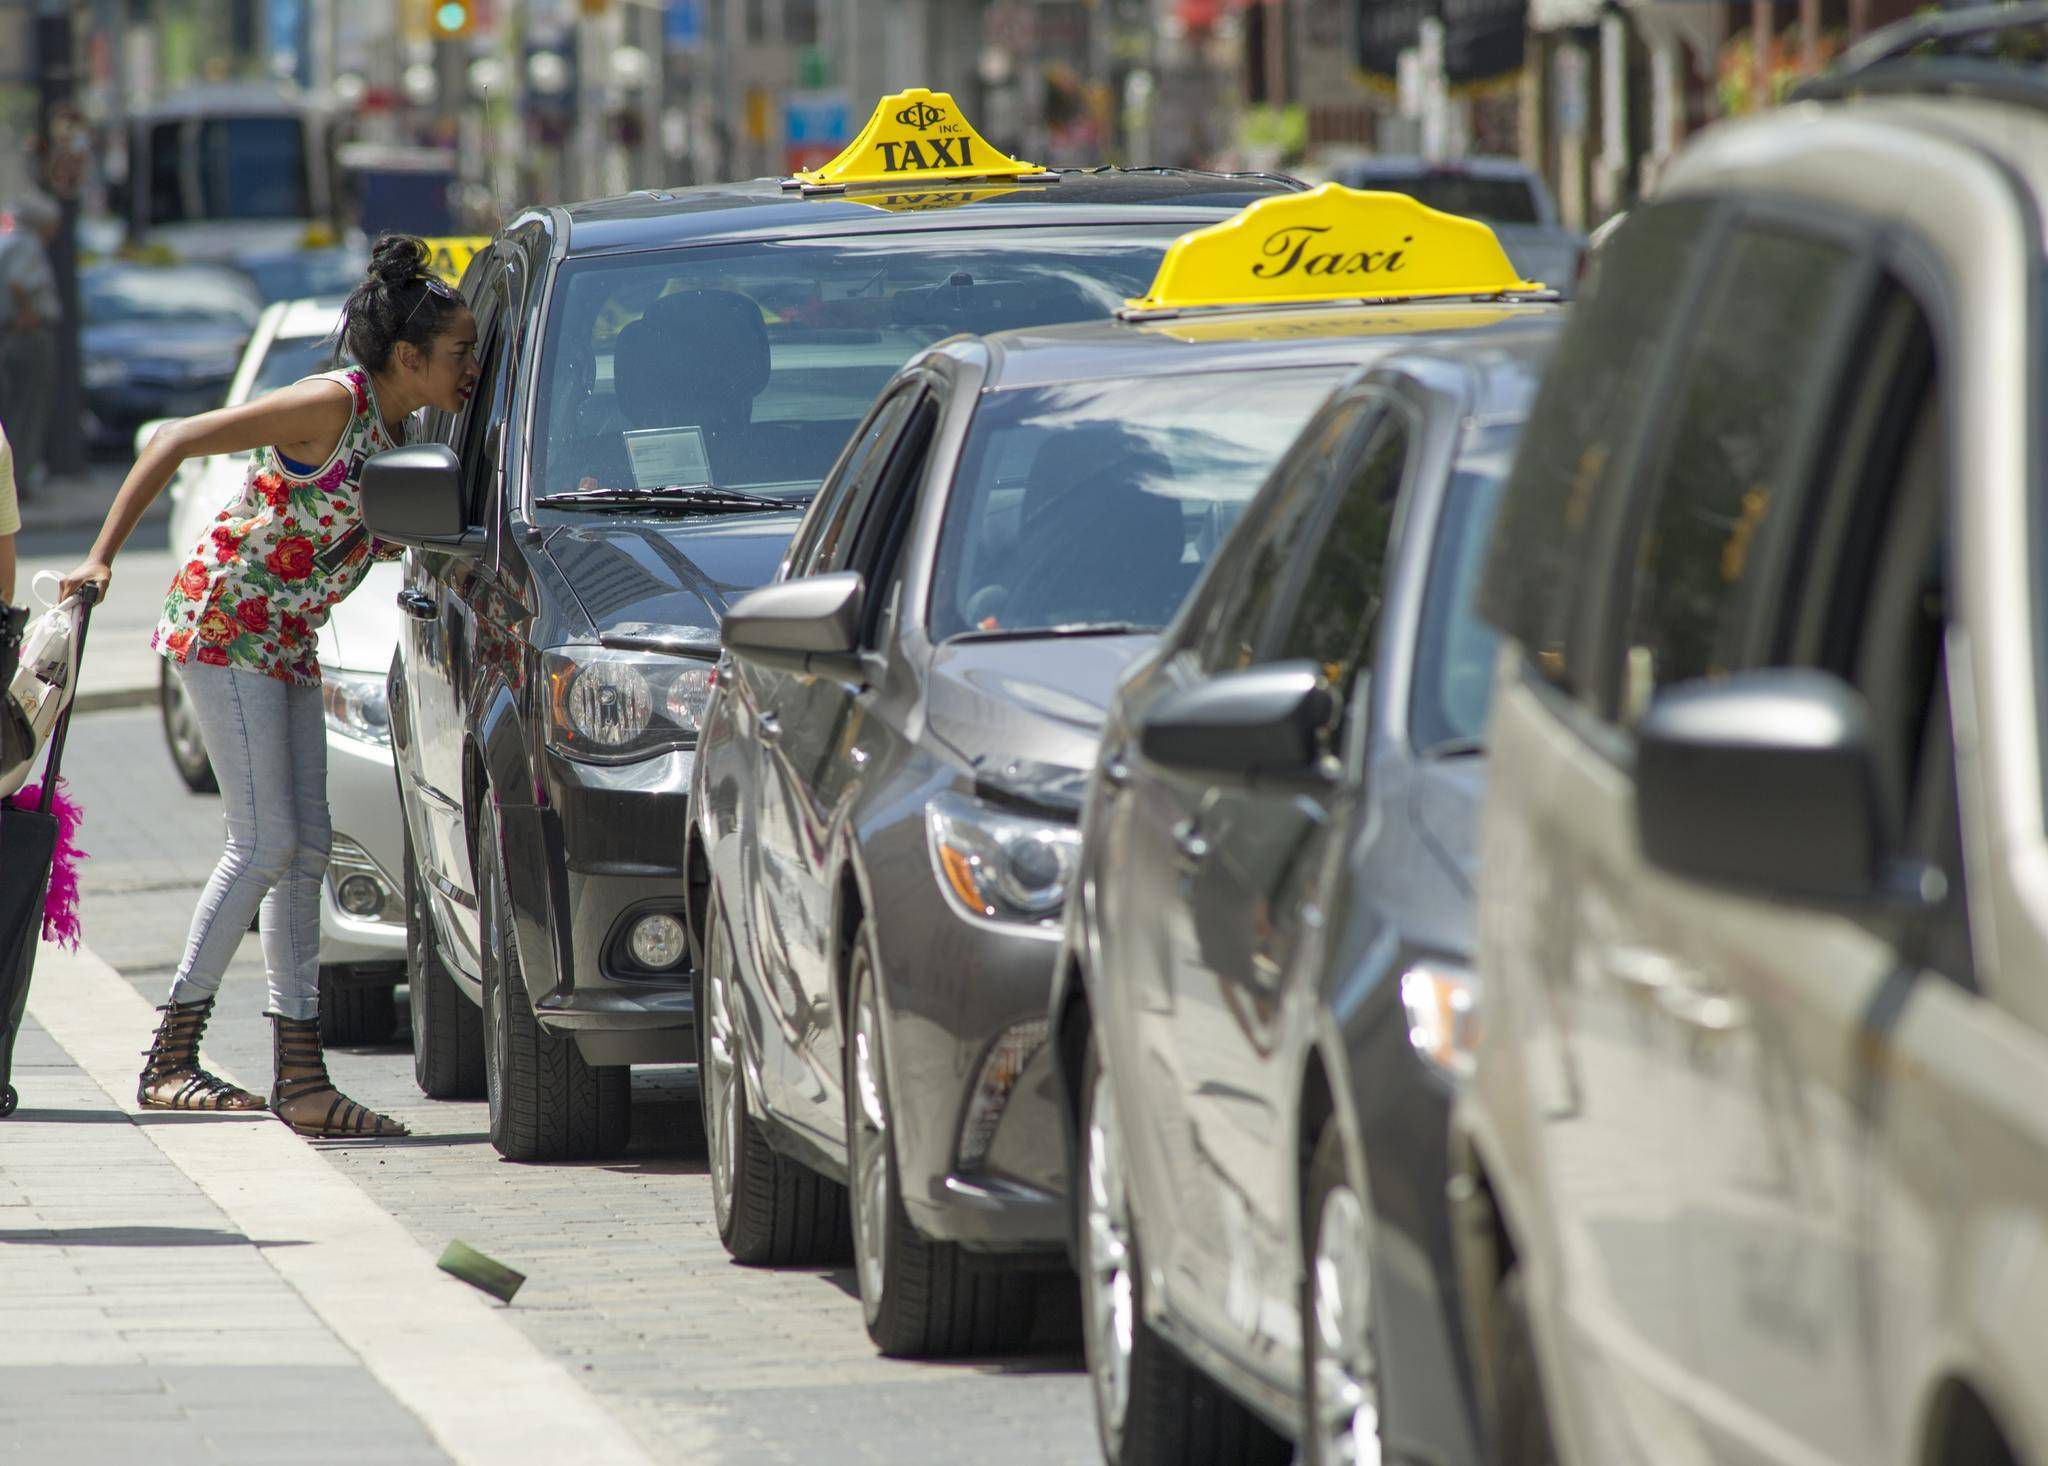 Competition bureau urges relaxed taxi rules to level playing field